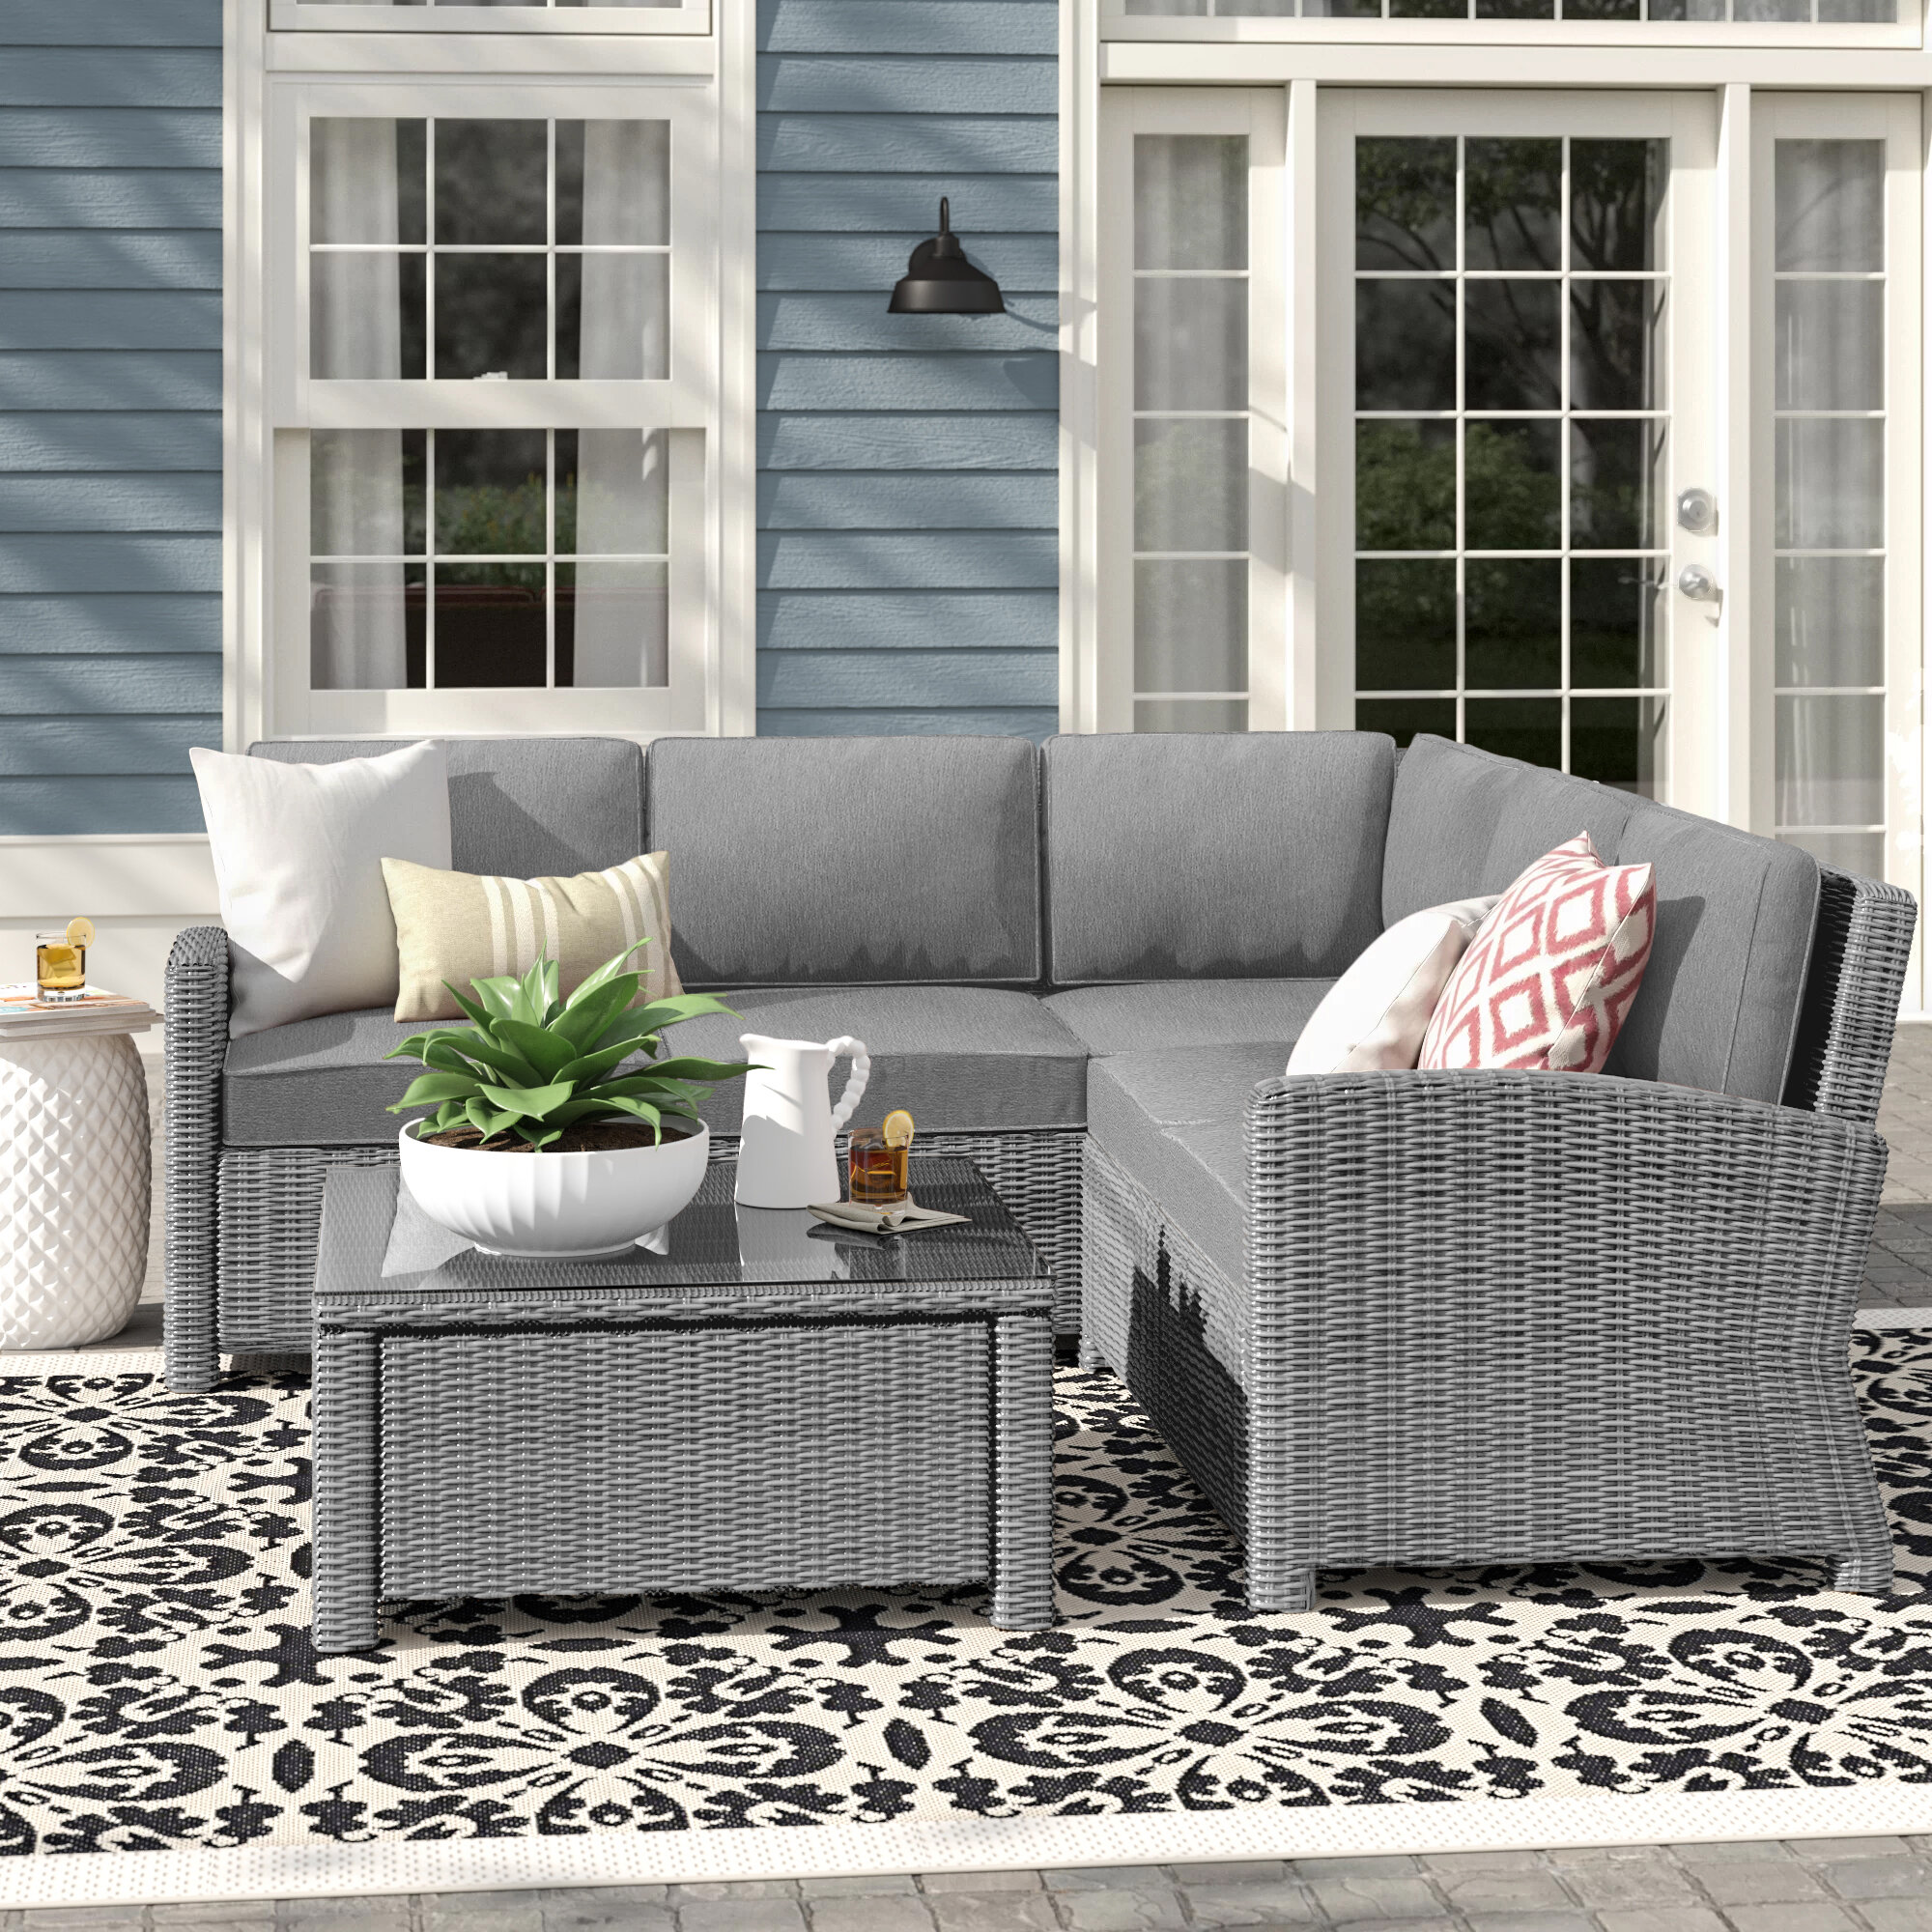 Lawson 4 Piece Rattan Sectional Seating Group With Cushions Reviews Birch Lane